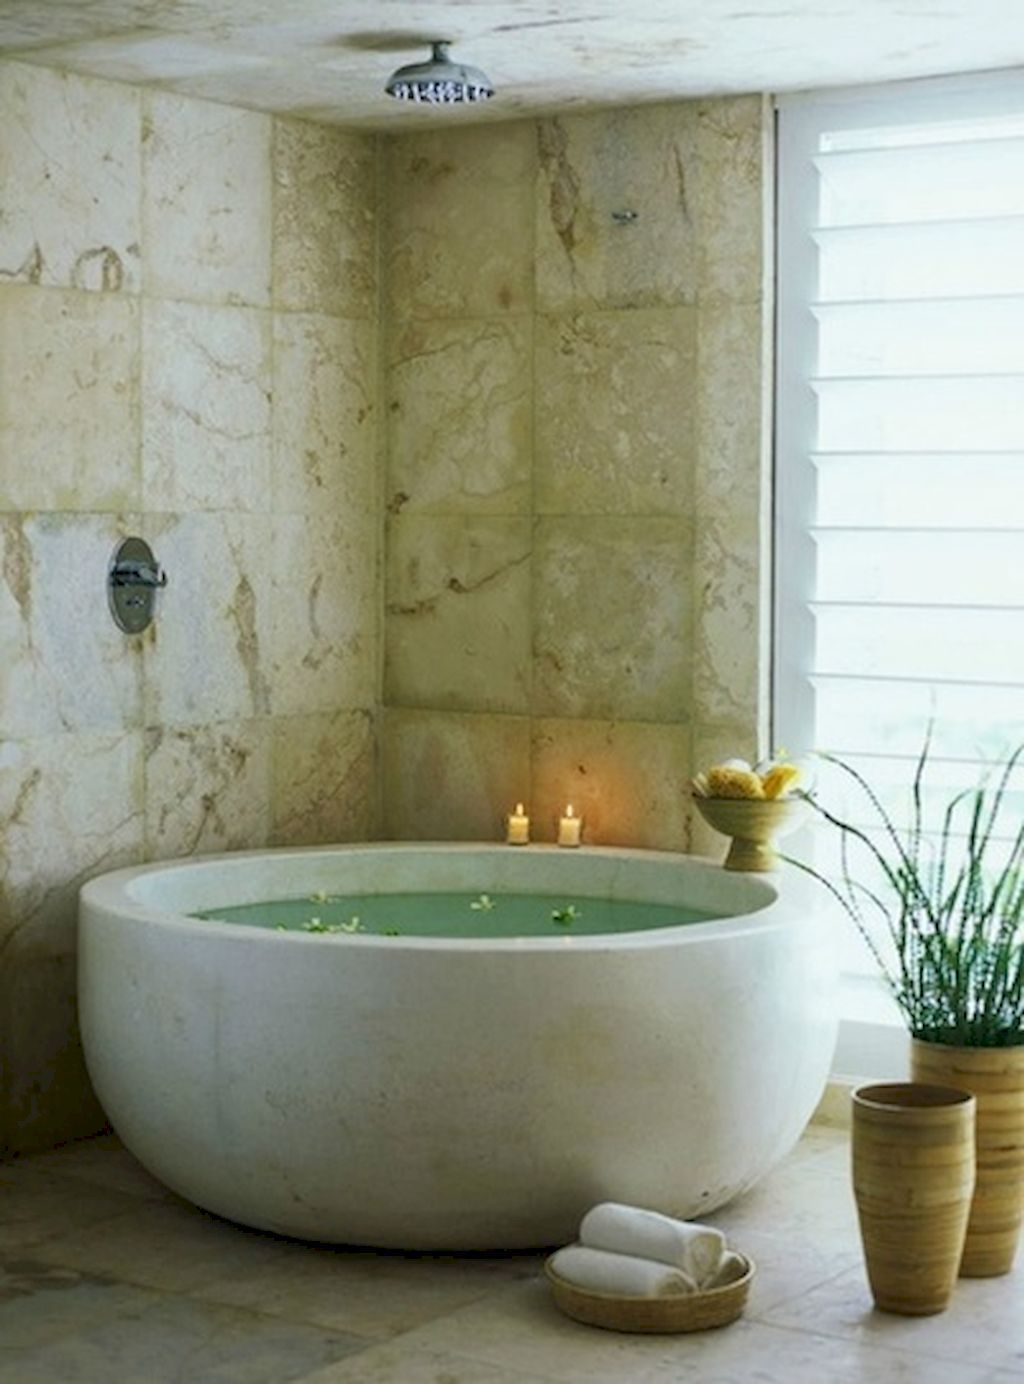 Badezimmer dekor ideen 2018 pin von bathroom vanities auf bathtubs in   pinterest